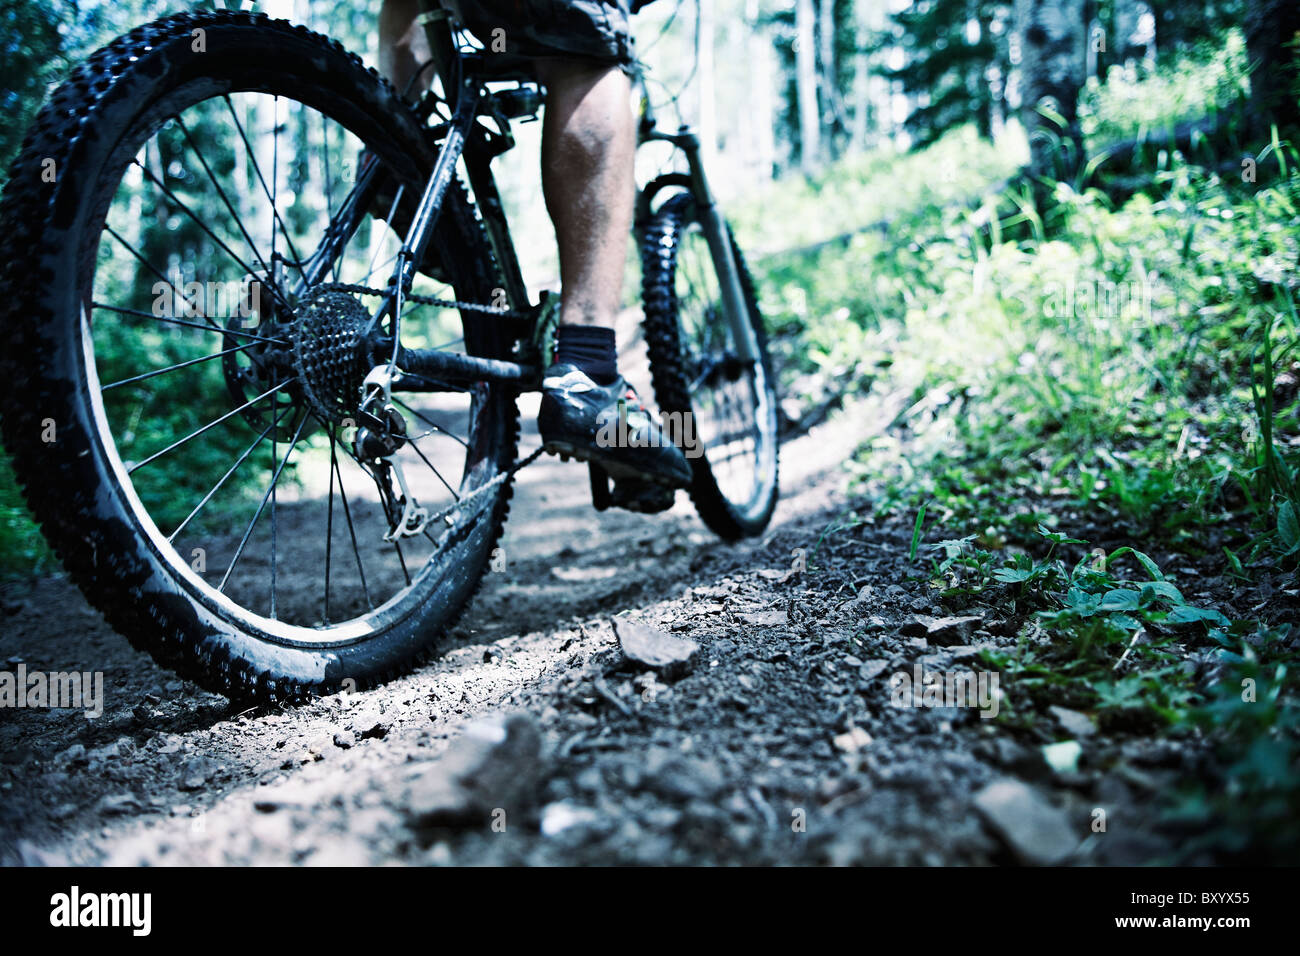 Man mountain biking in forest Photo Stock